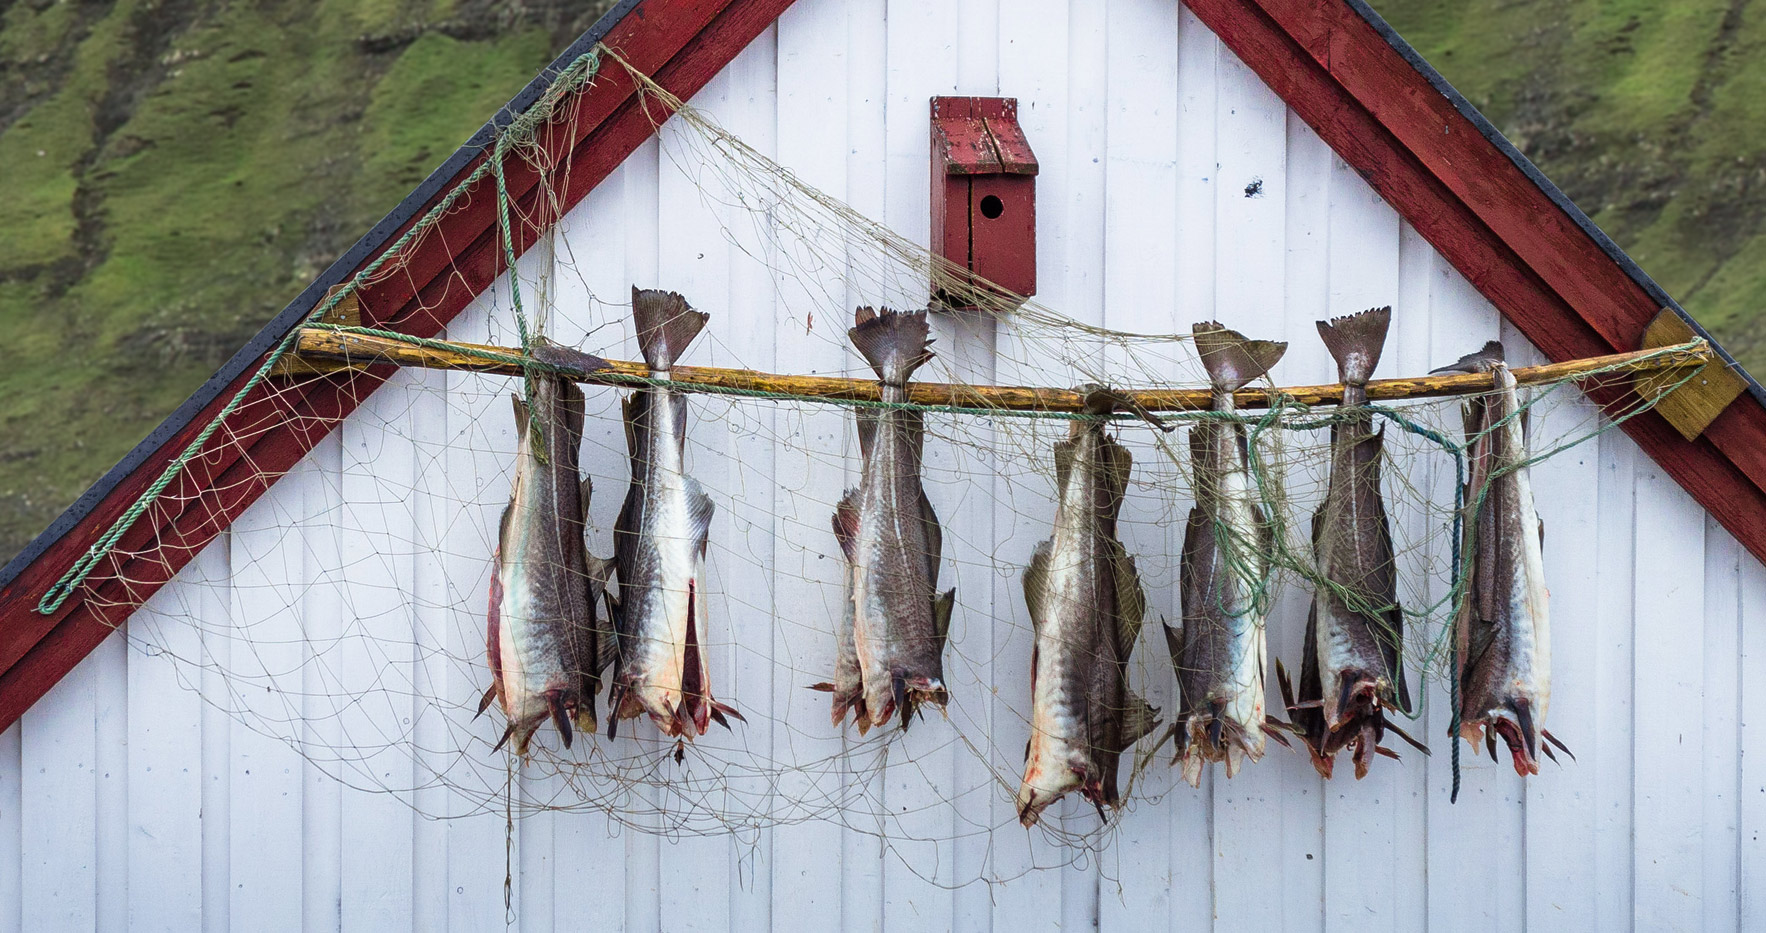 drying of fishes